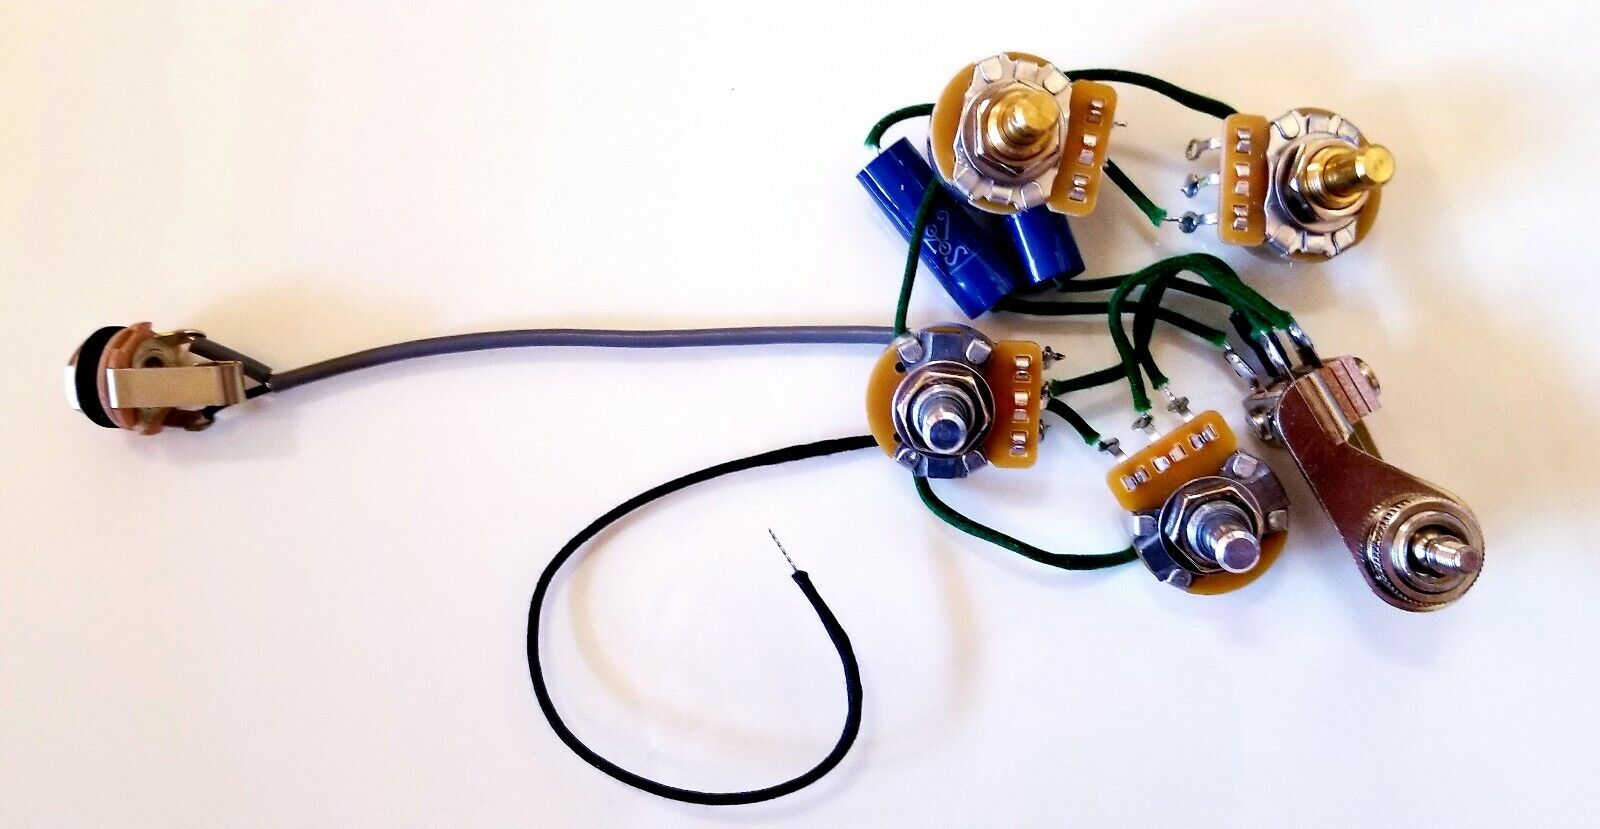 Rickenbacker Wiring Harness Assembly With Double Mono Jack - 00209 for sale  online | eBayeBay